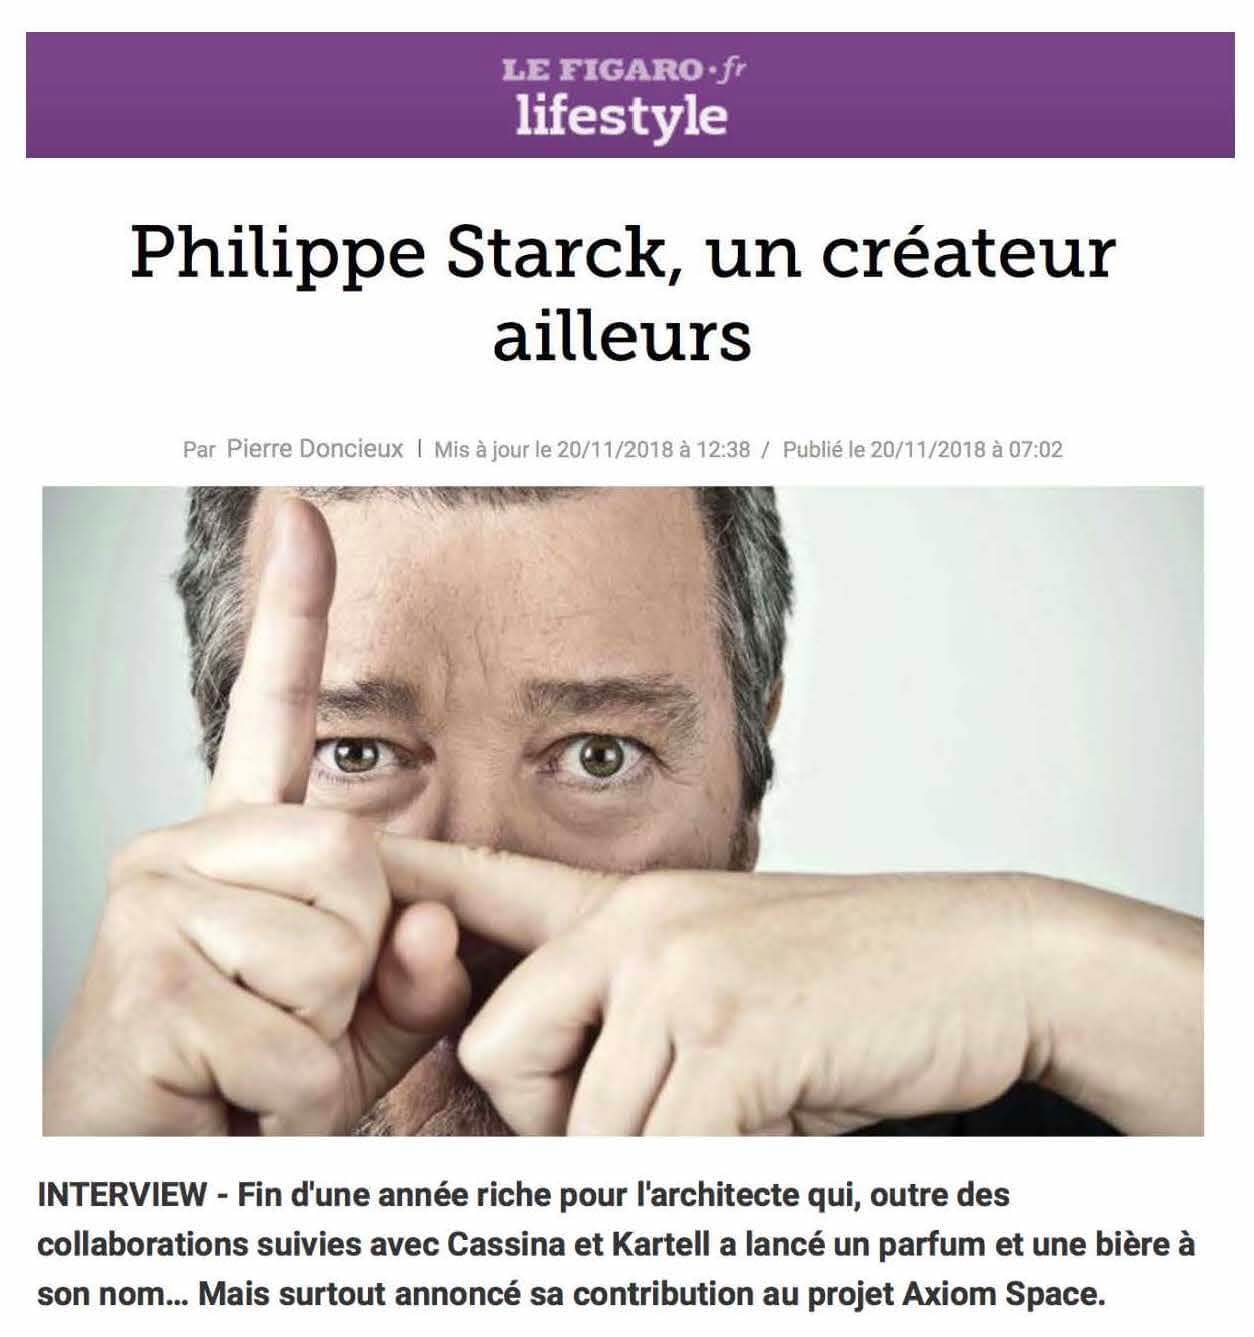 Philippe Starck , a creator from elsewhere